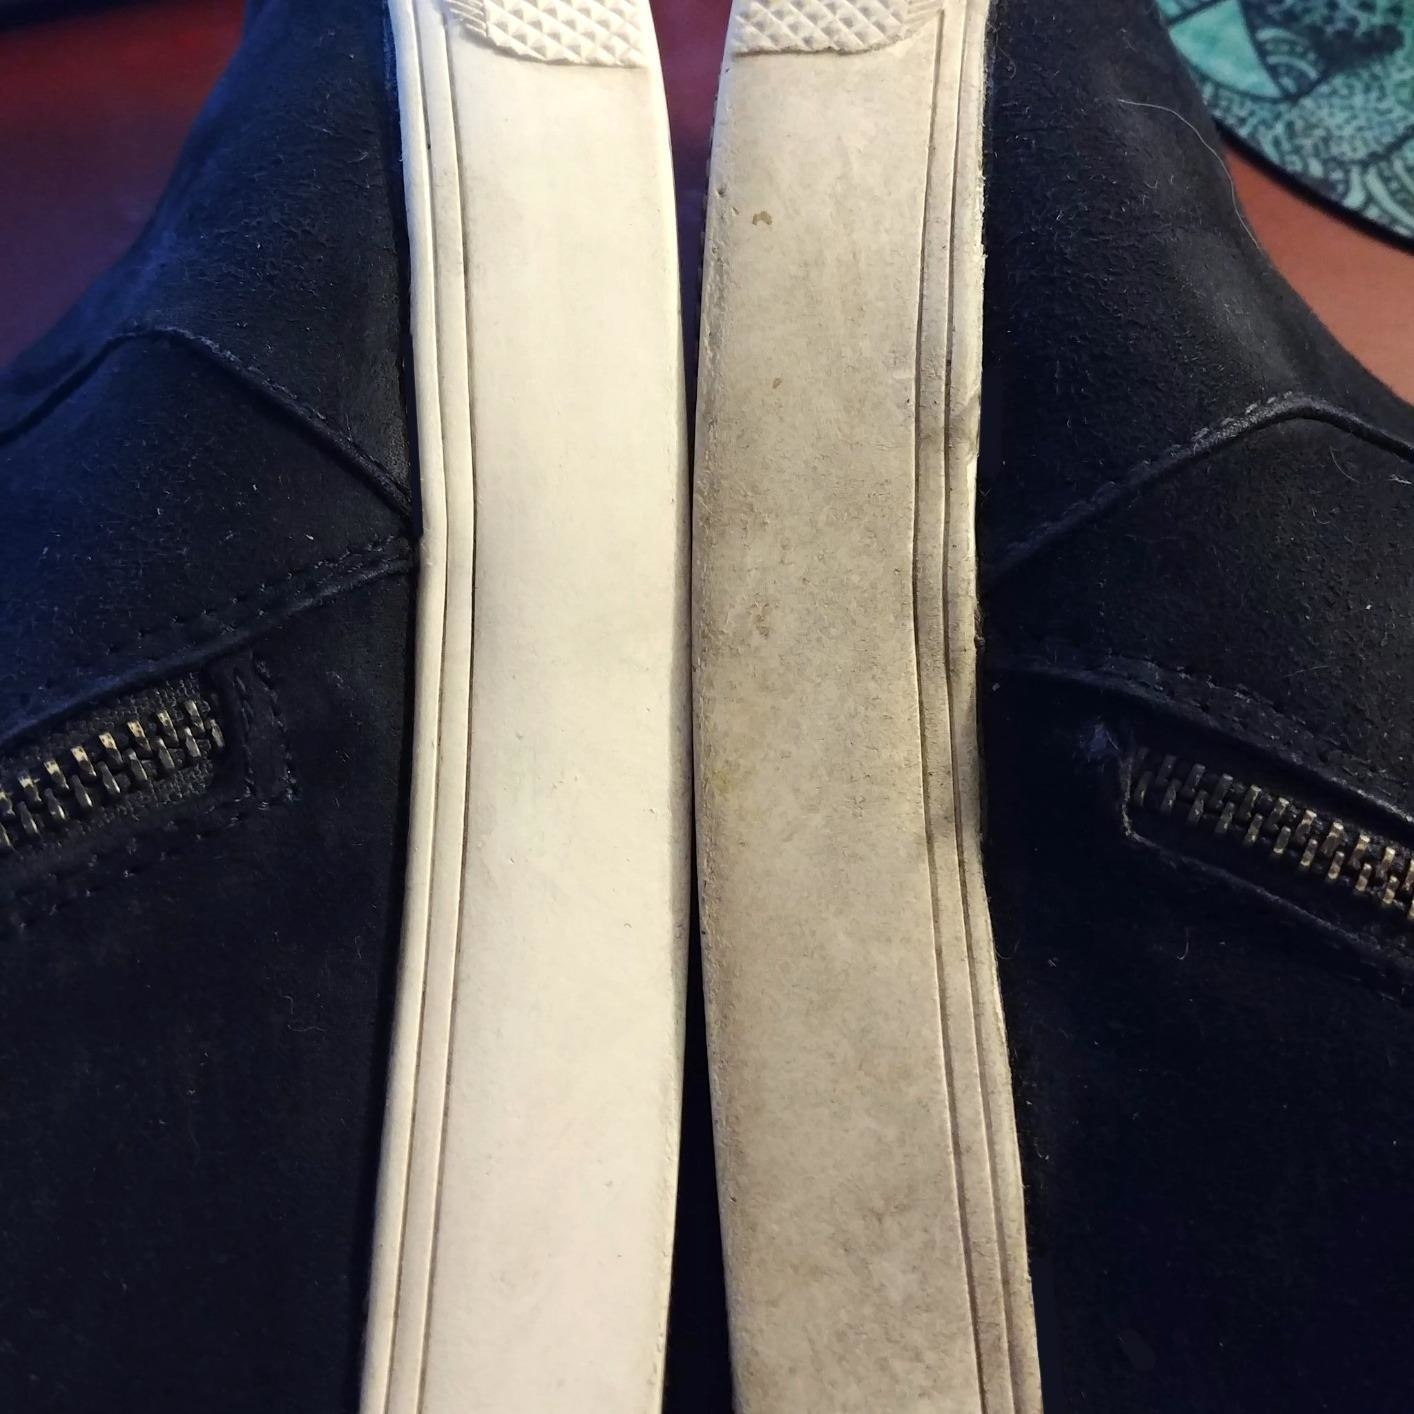 reviewer image of two shoes side by side; one has a white sole and the other a dirty, grey sole